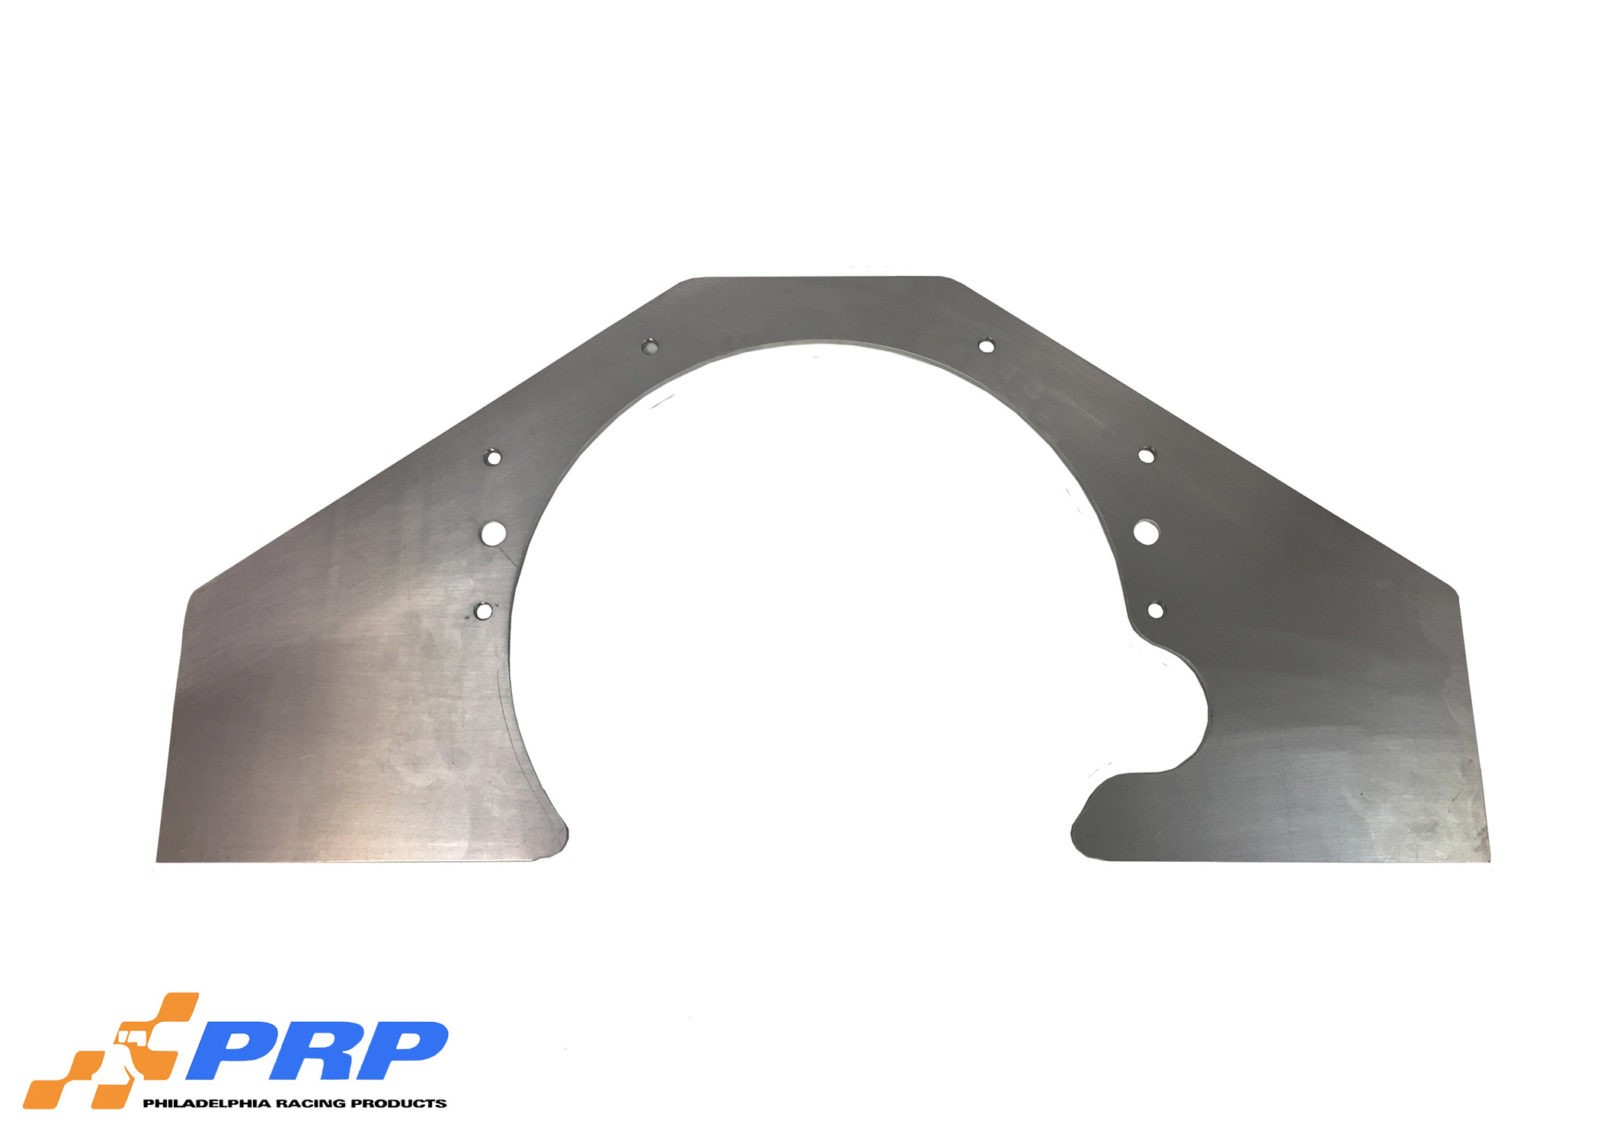 Aluminium Billet Mid Mount Motor Plates made by PRP Racing Products